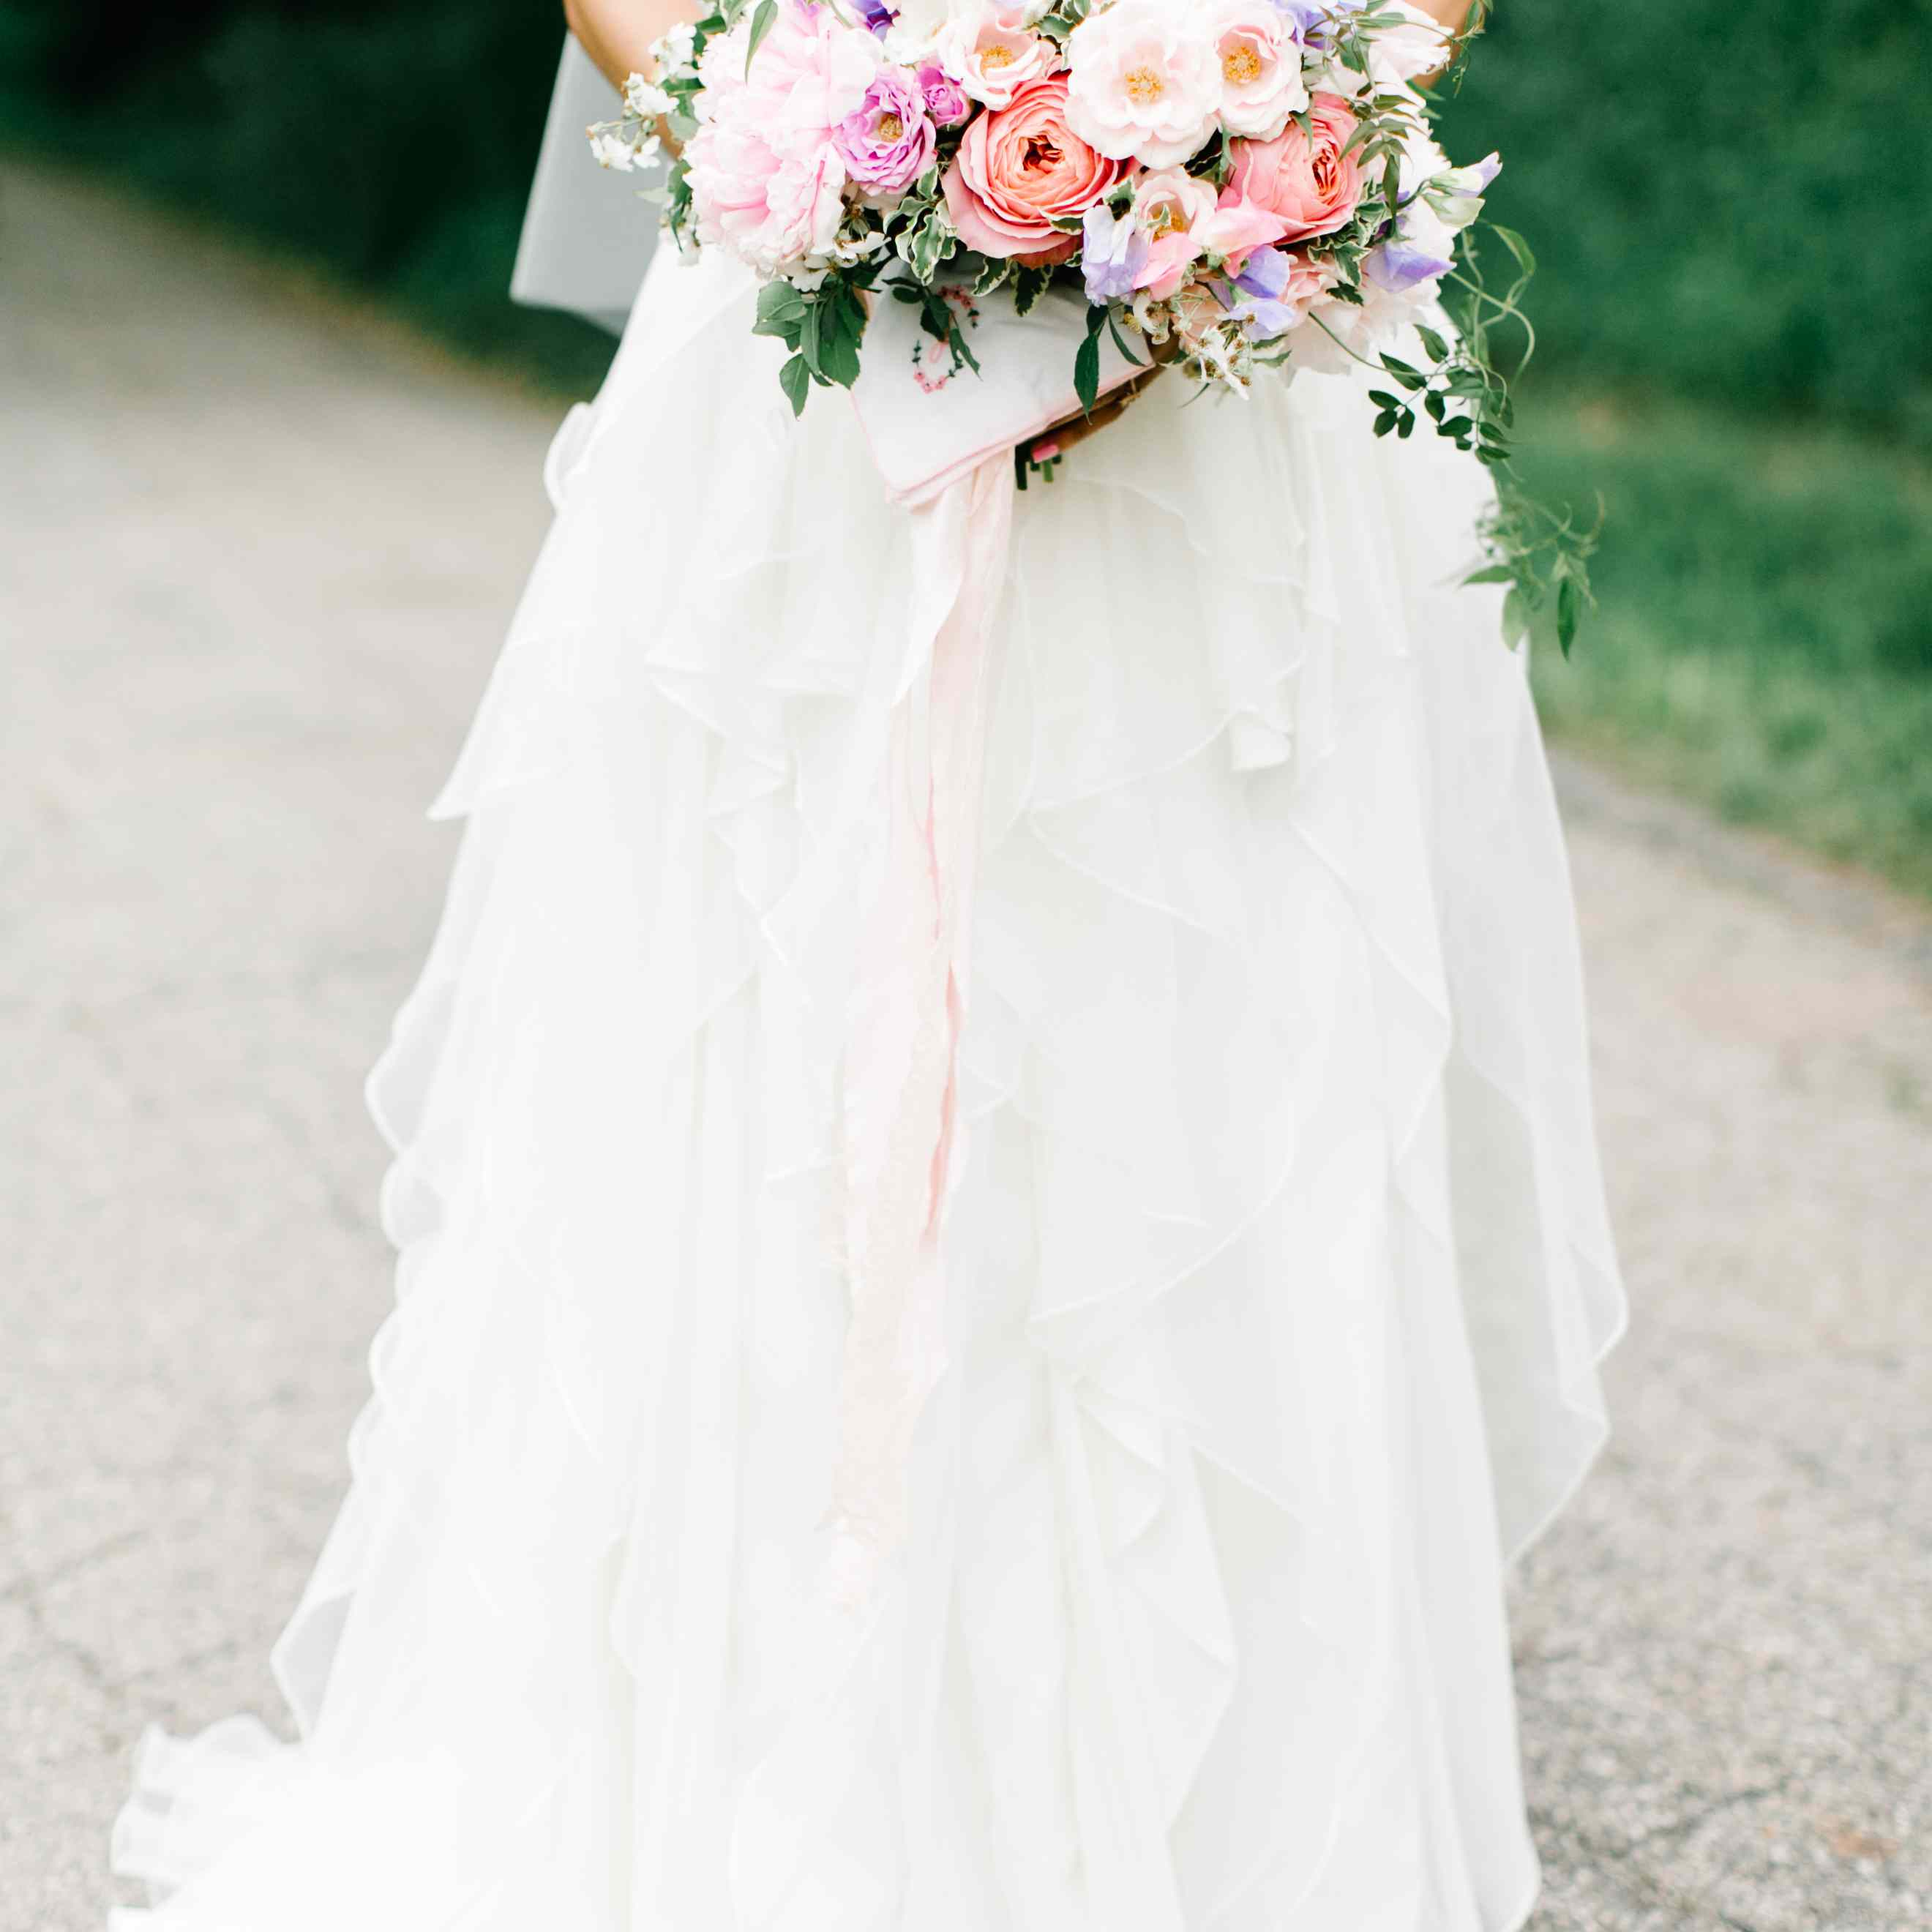 Ceremony And Reception Gap: 7 Feminist Alternatives To Outdated (and Patriarchal